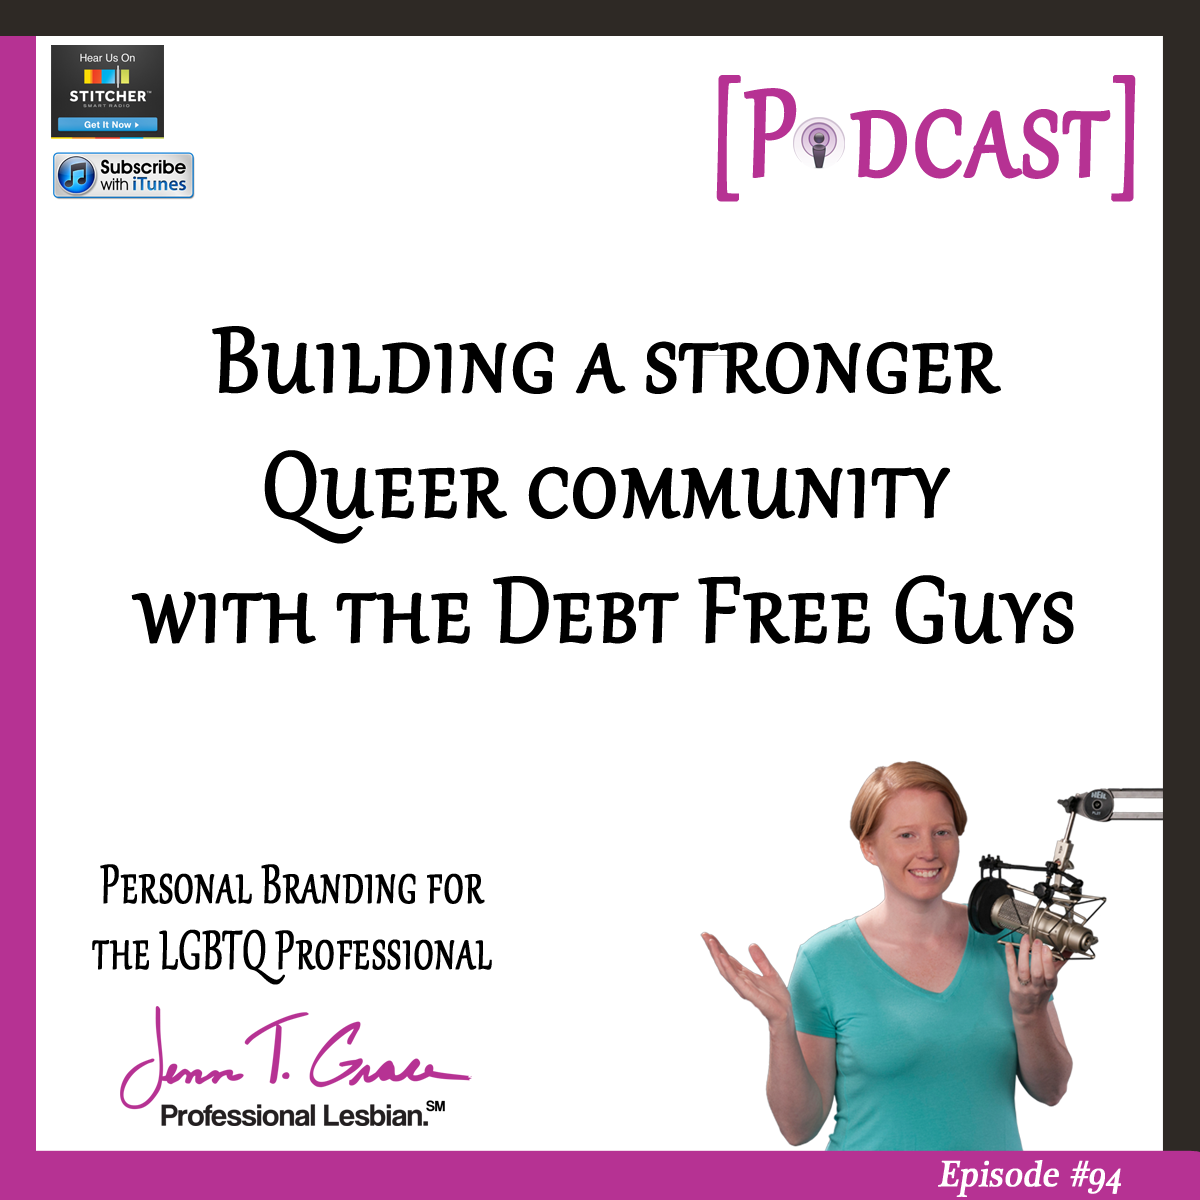 #94: Building a Stronger Queer Community with the Debt Free Guys